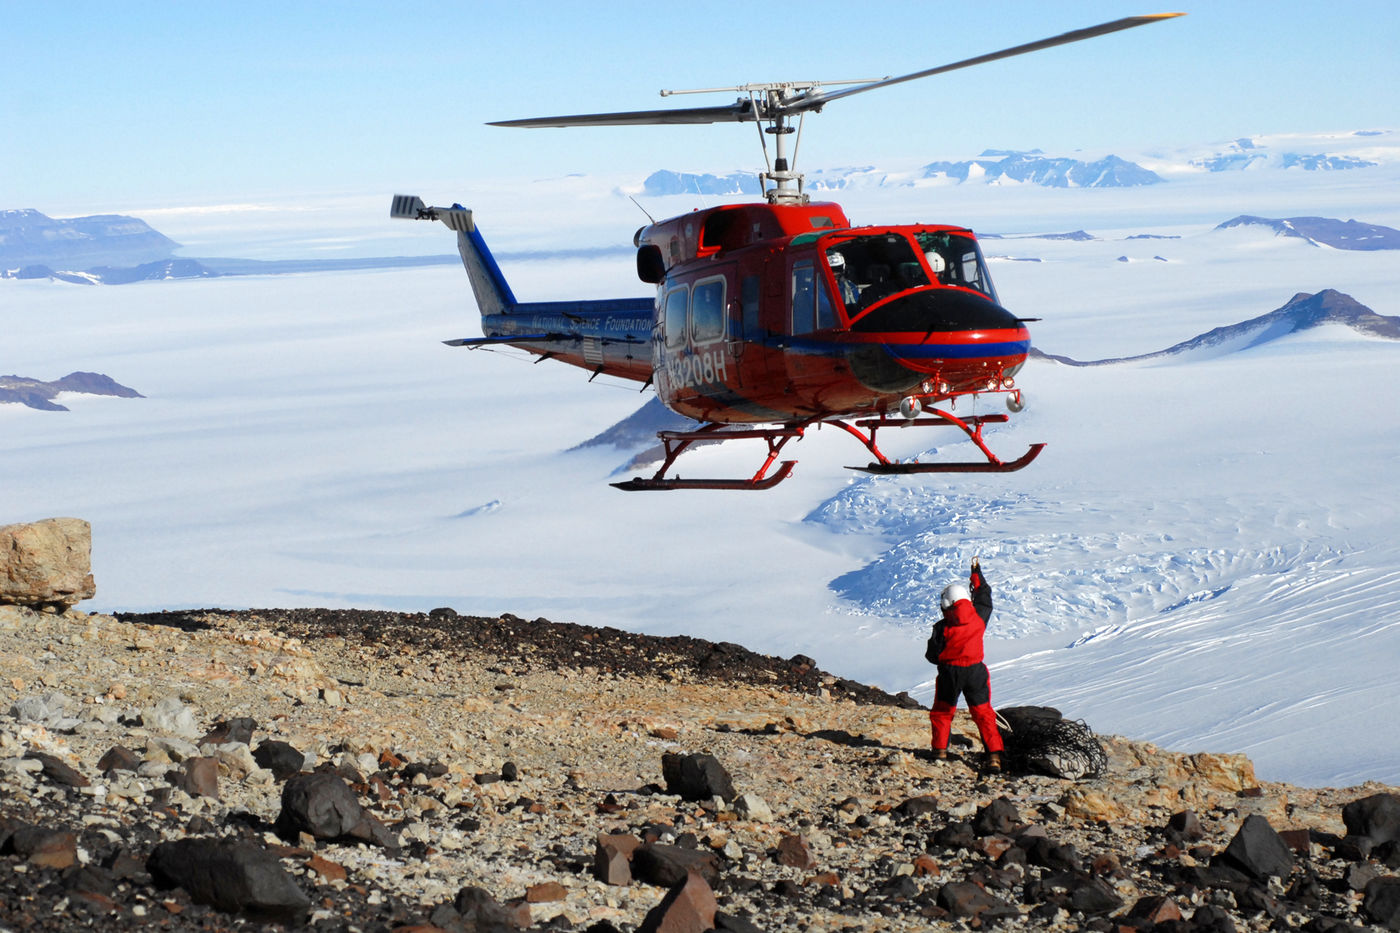 A red helicopter hovers close to the ground, which is rocky in the foreground and an expanse of snow in the background. A person dressed in a red snowsuit and helmet reaches a hand up towards the helicopter to attach a cargo net with fossils.